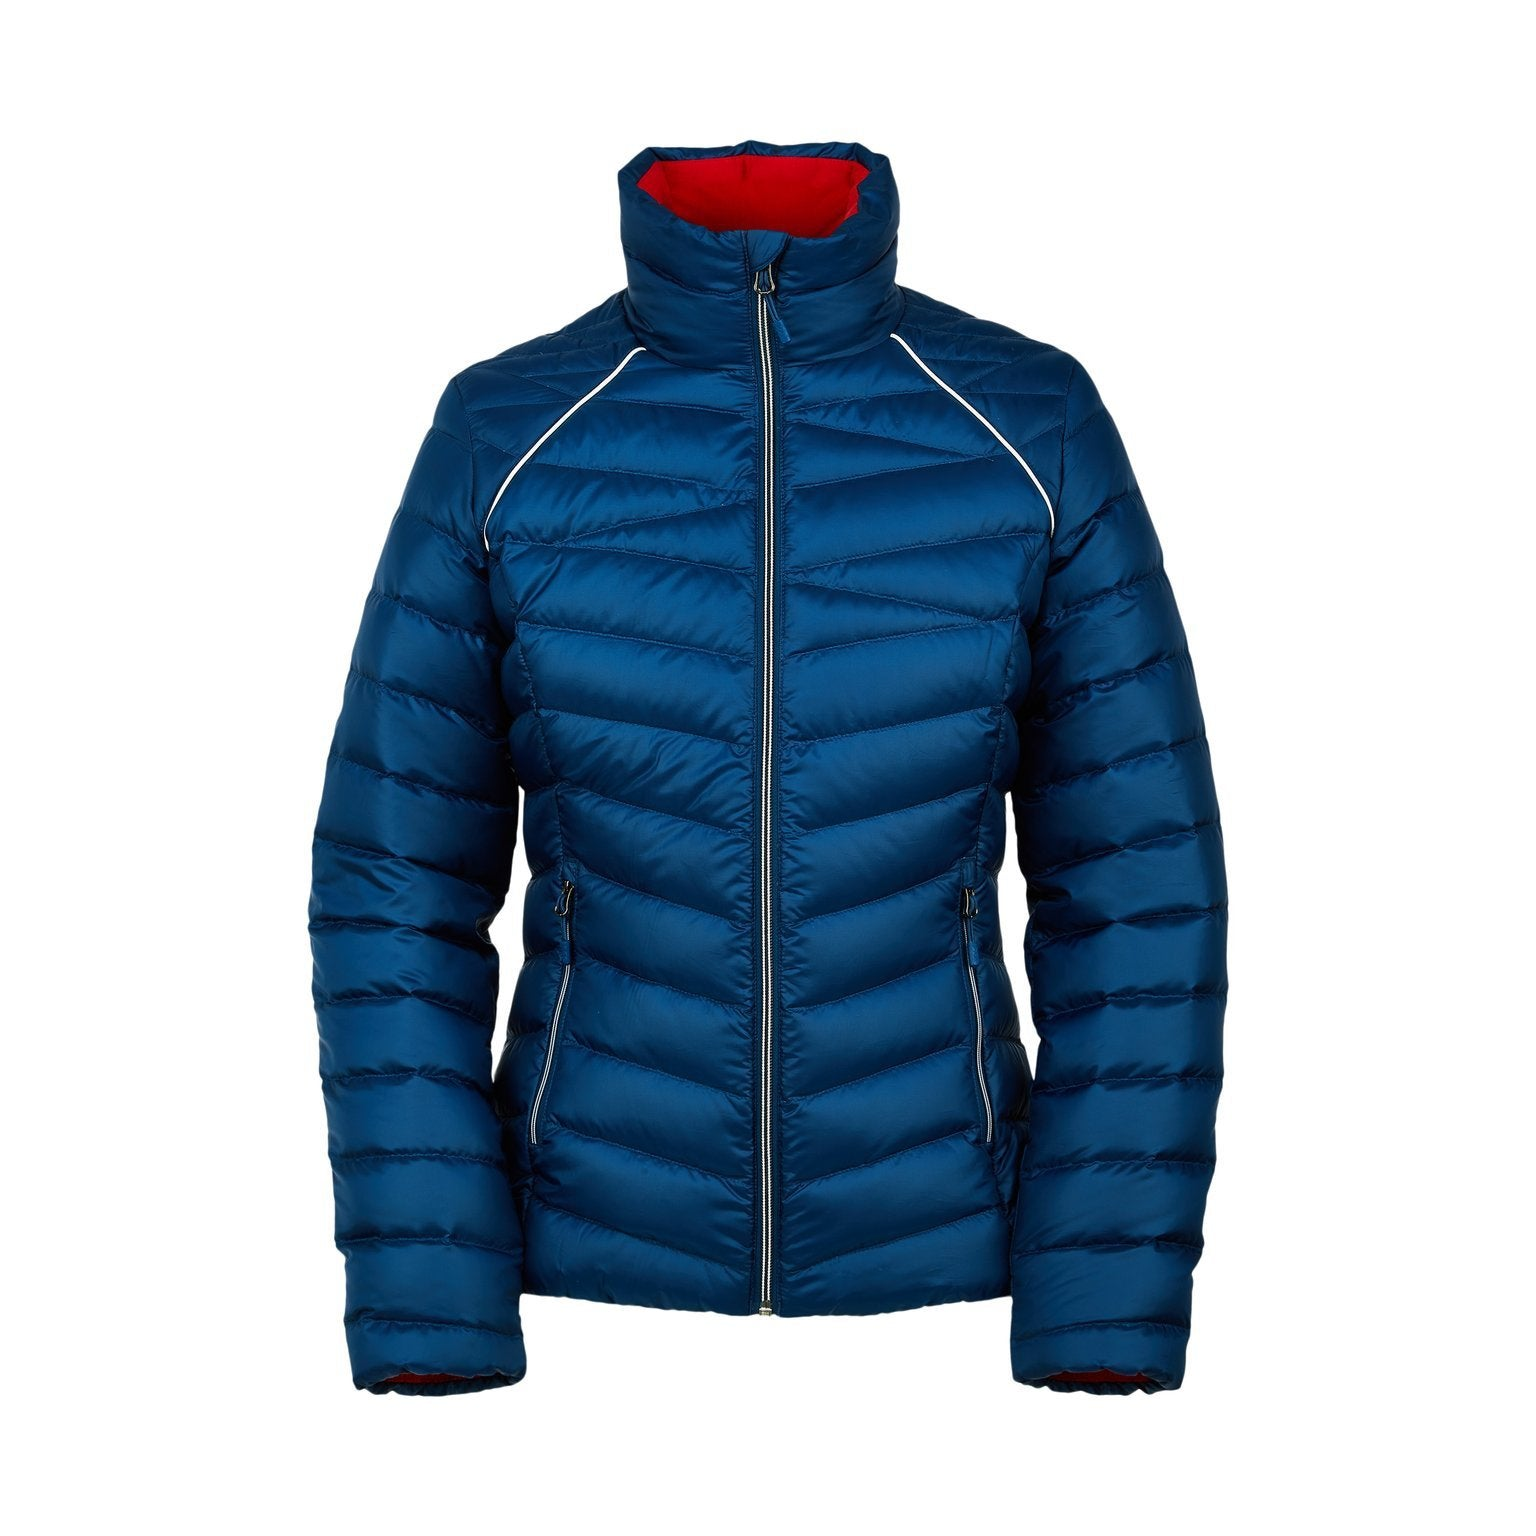 Spyder 2021 Women's TIMELESS Jacket